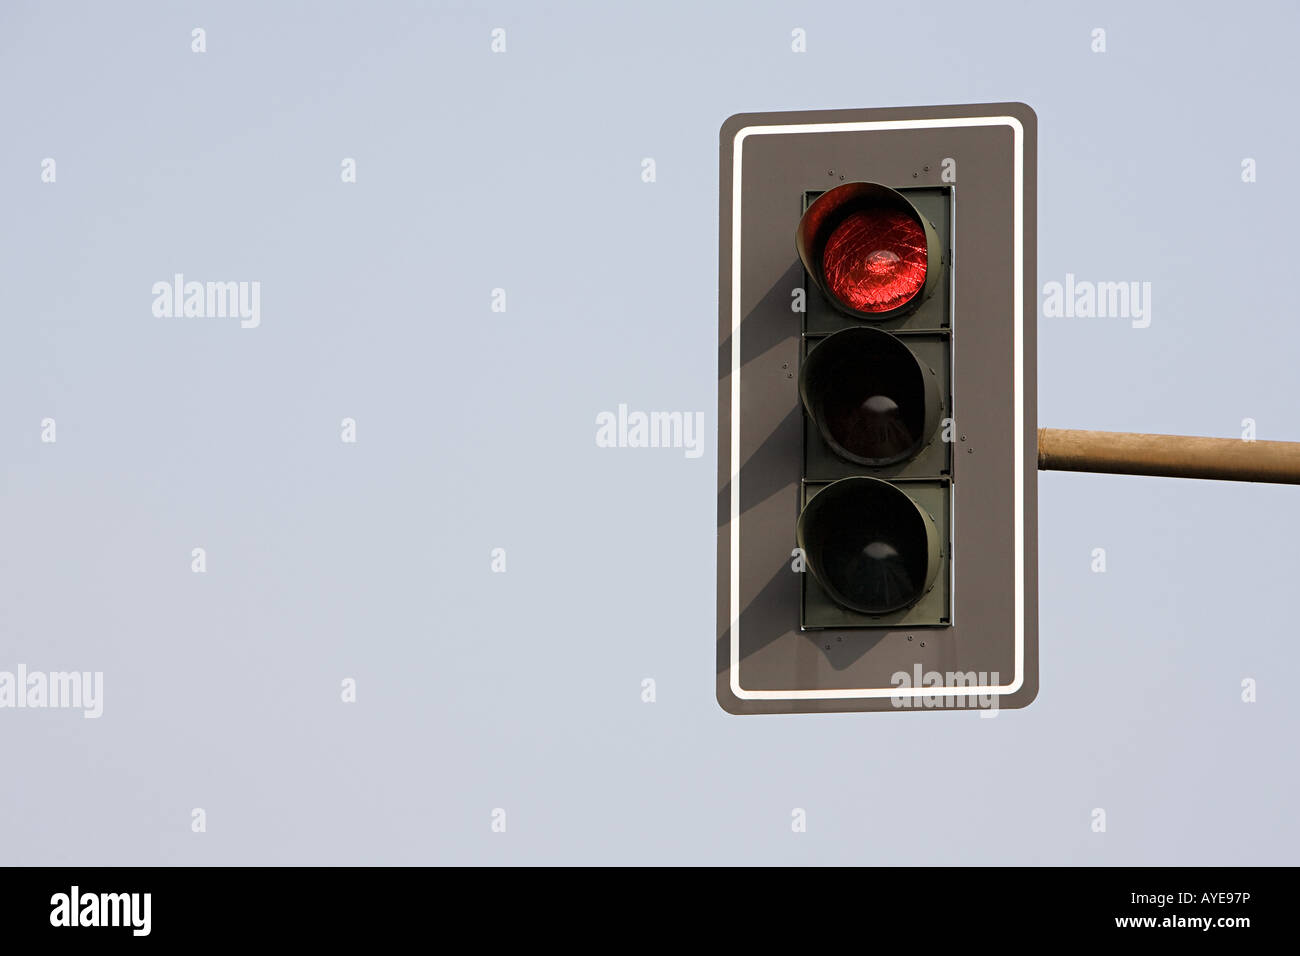 Traffic light on red - Stock Image